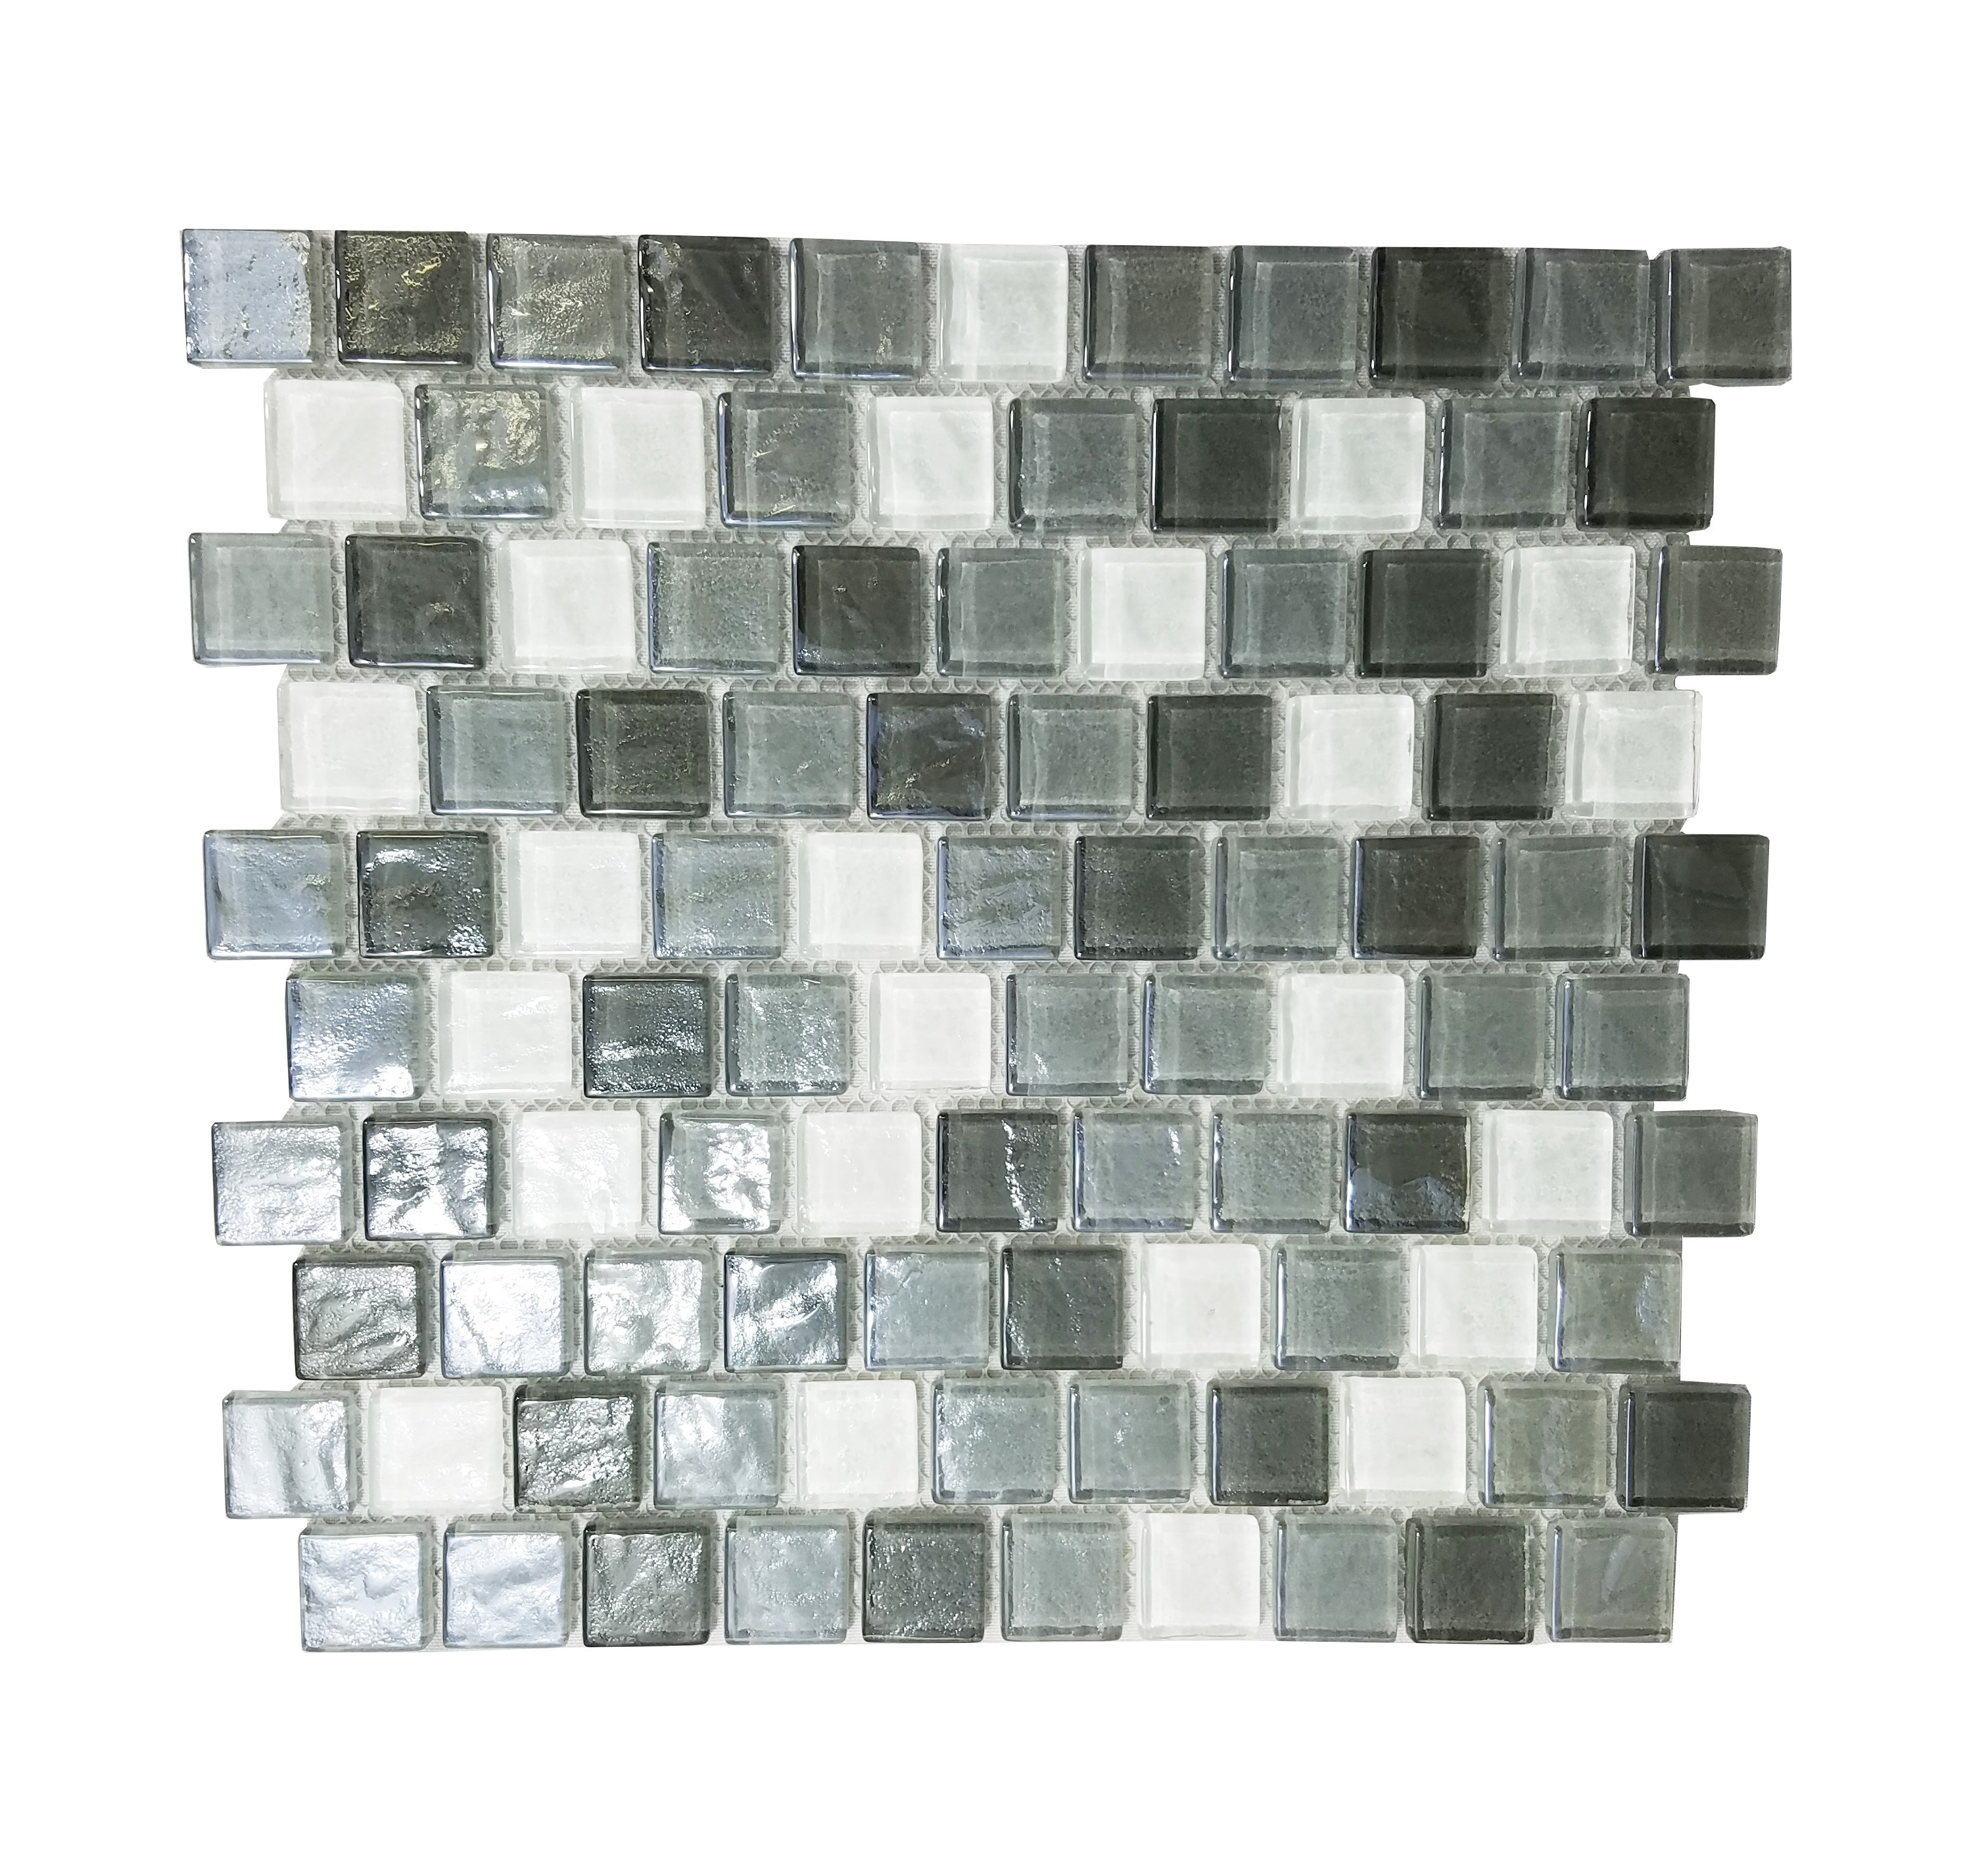 "Geo 1"" x 1"" Textured Gray Glass Square Backsplash Mosaic Wall Tile"